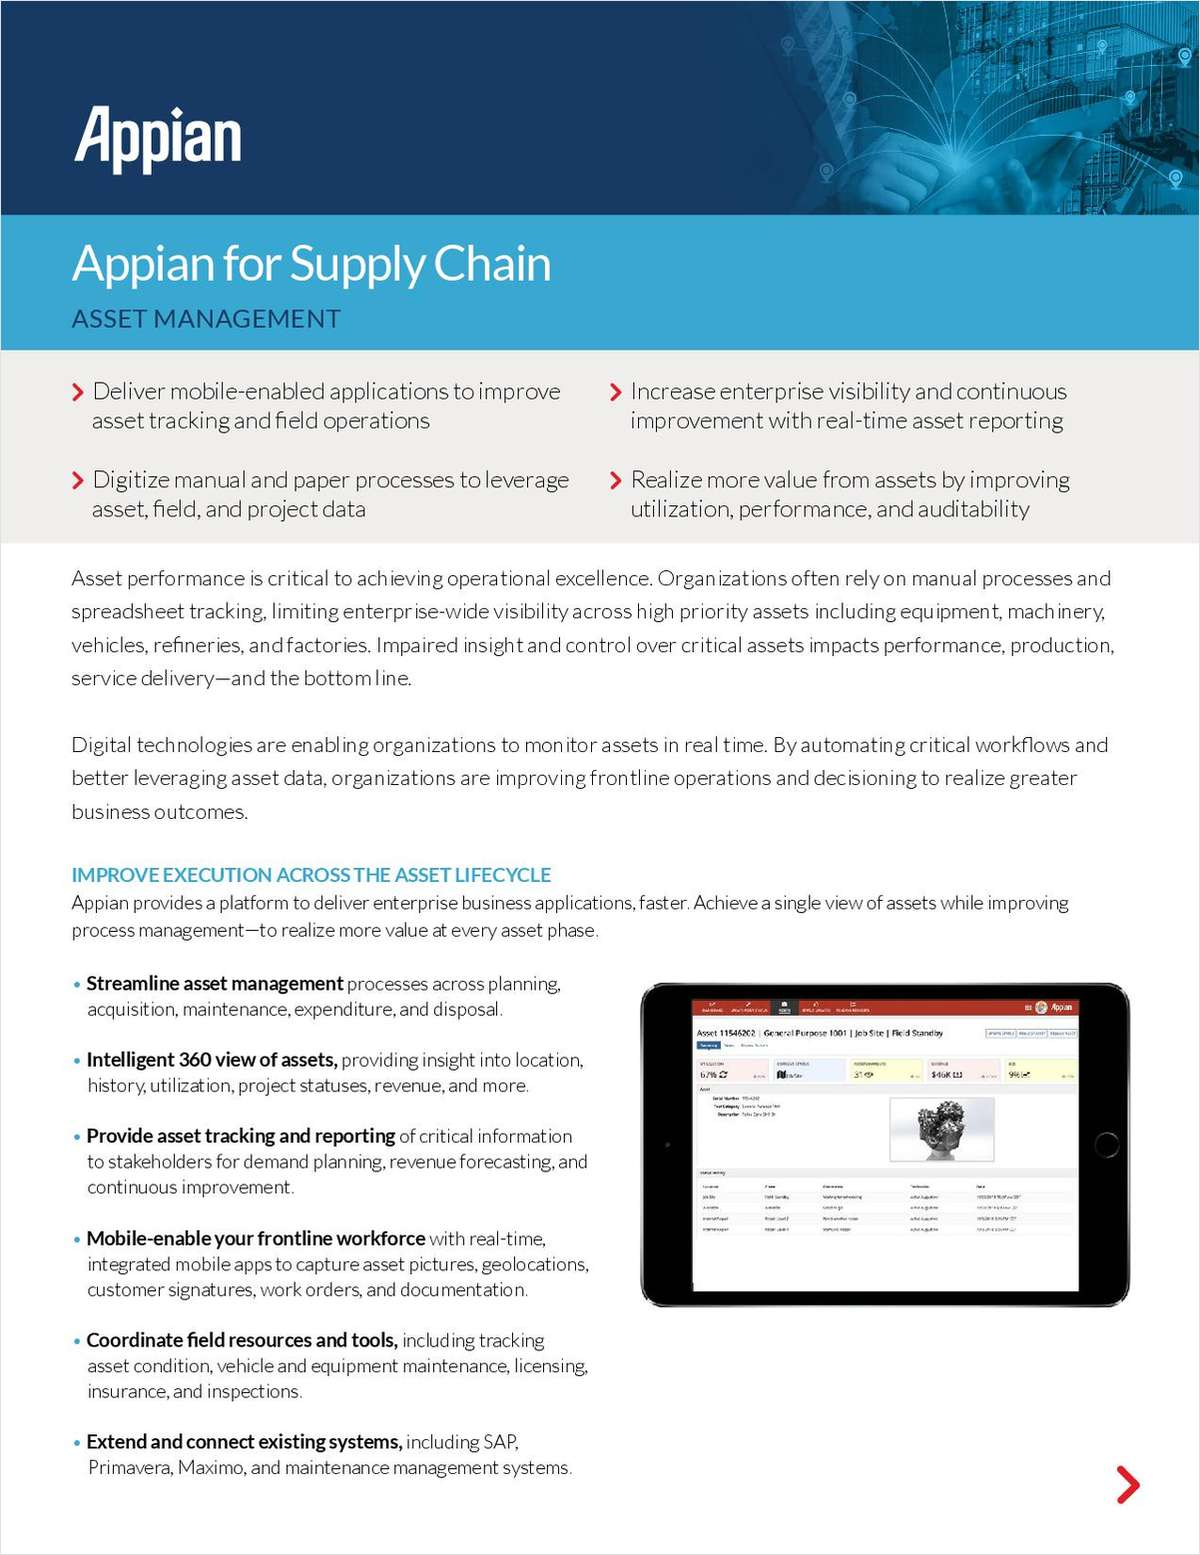 Appian for Supply Chain: Asset Management